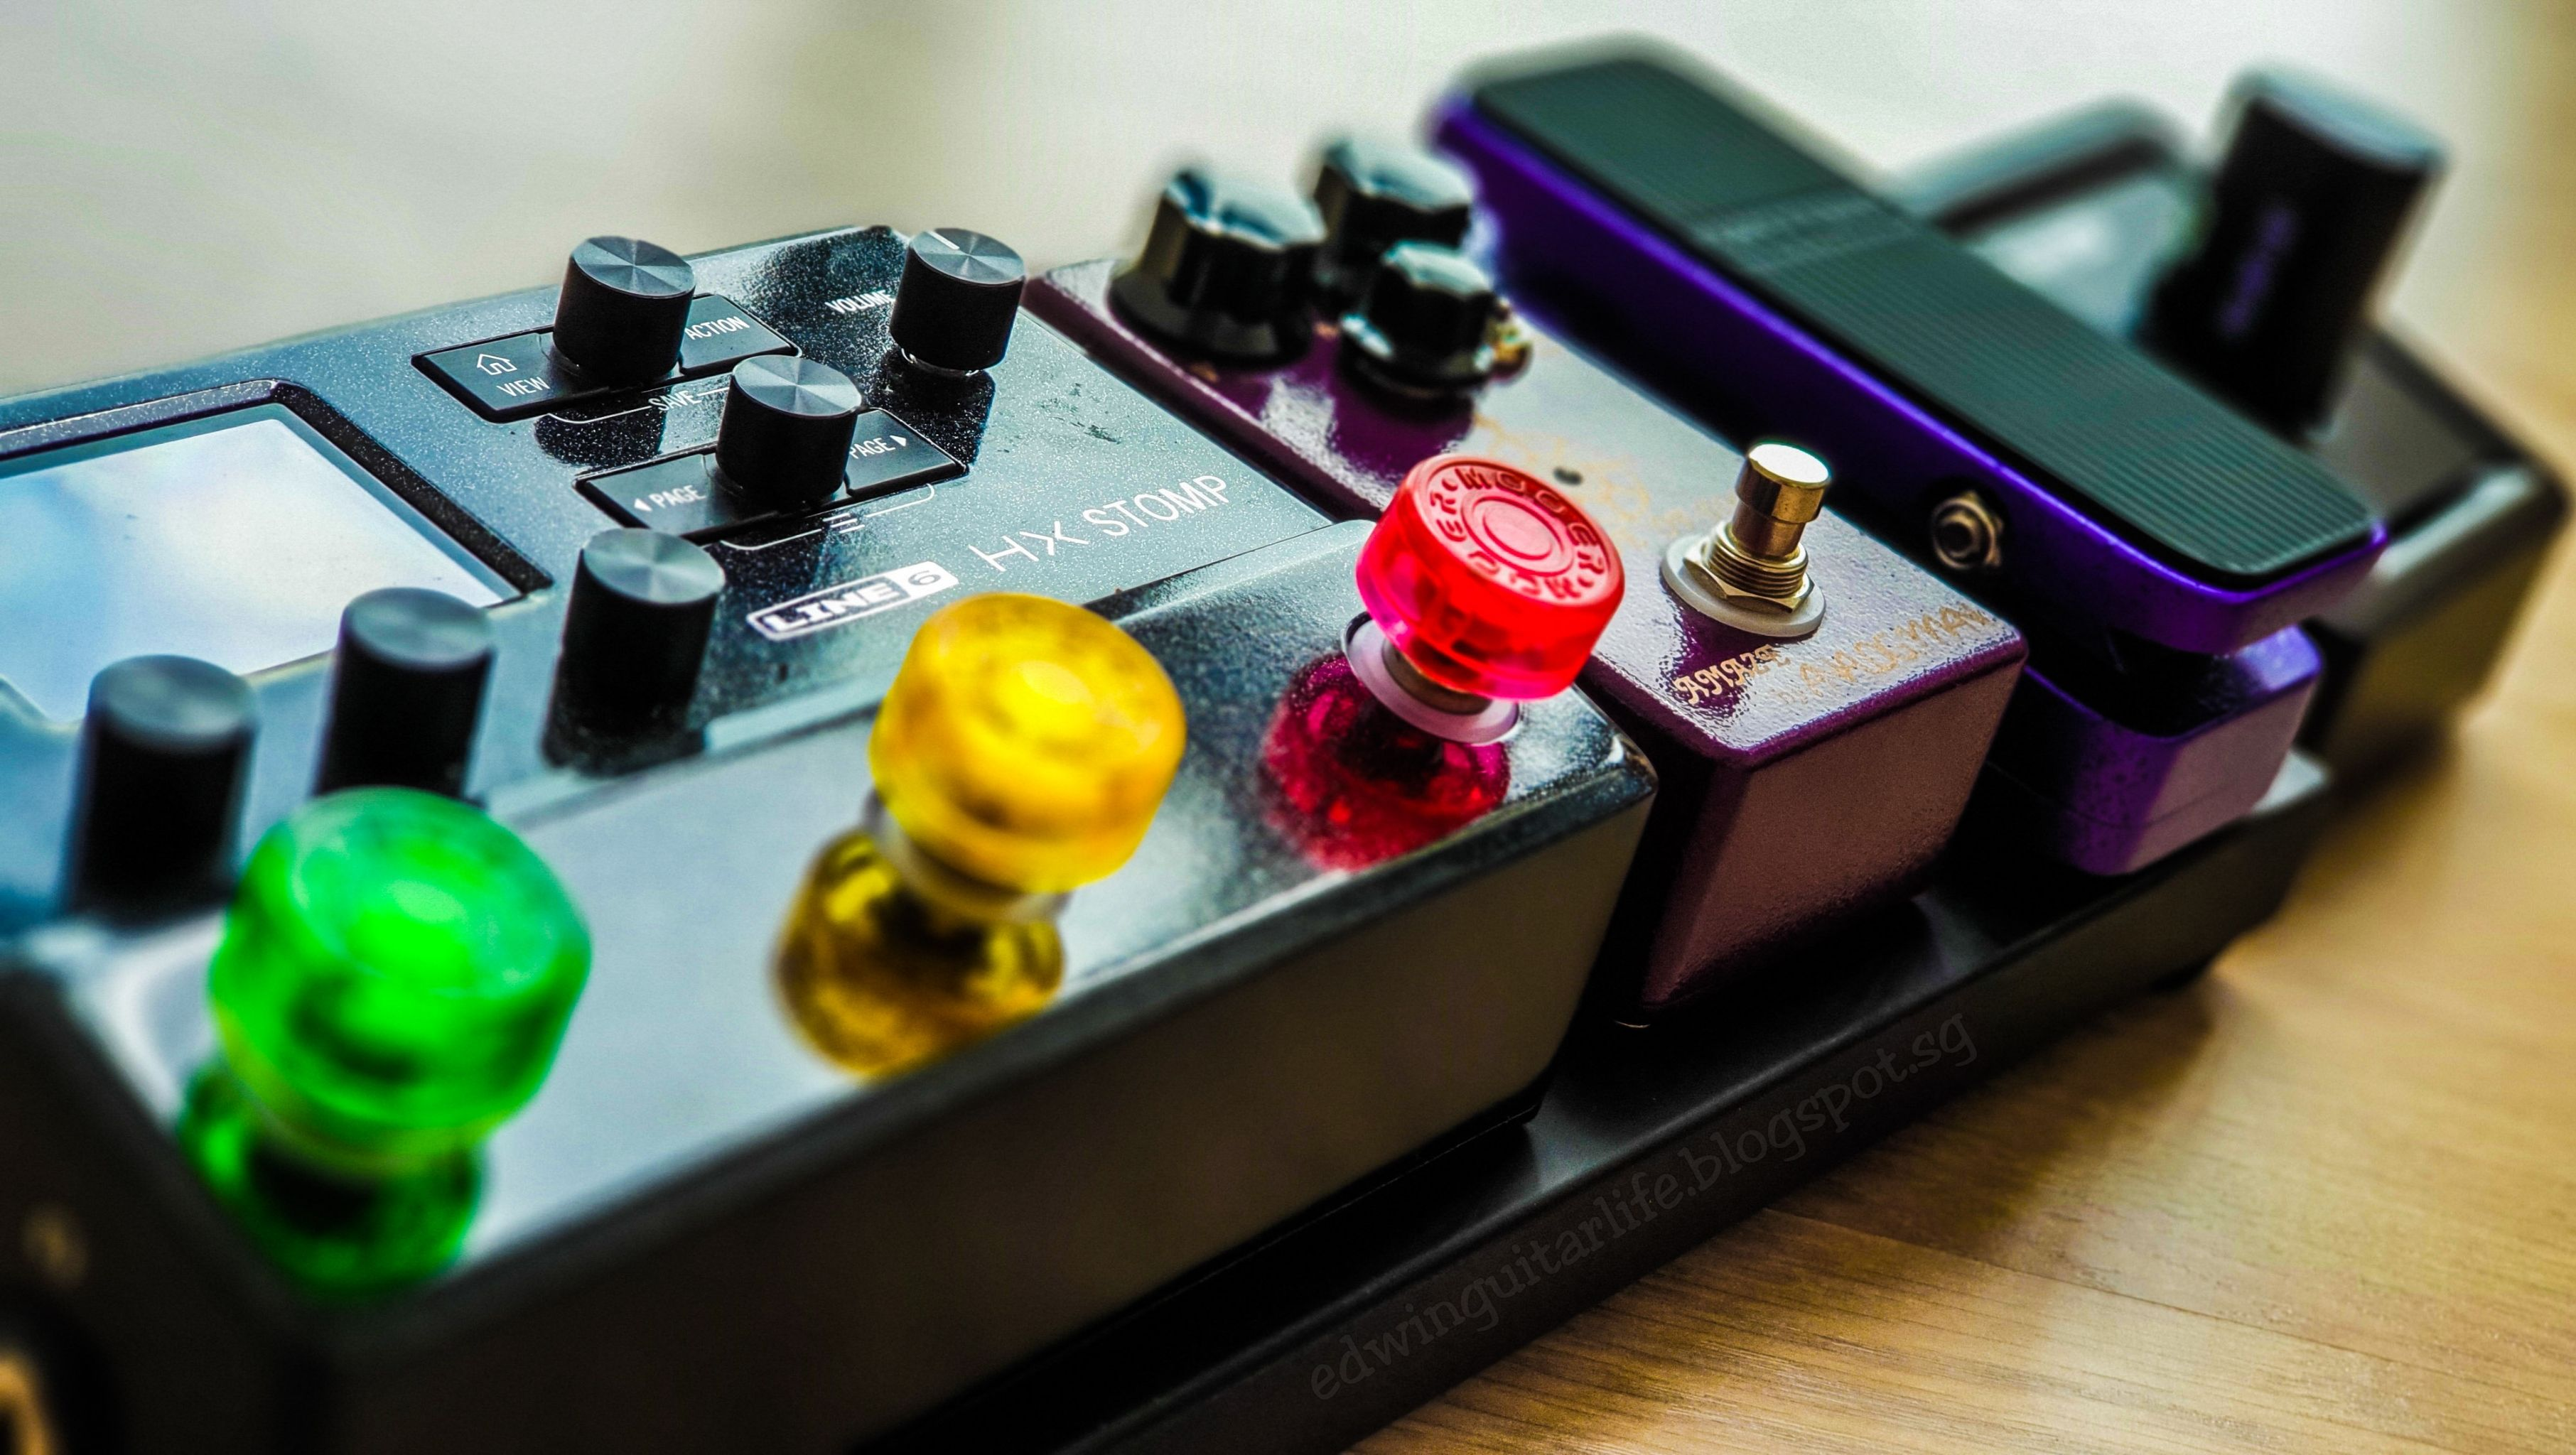 Line 6 Hx Stomp On Pedaltrain Nano With Analogman Prince Of Tone And Hotone Vow Press Pedalboard Usb Flash Drive Gaming Products